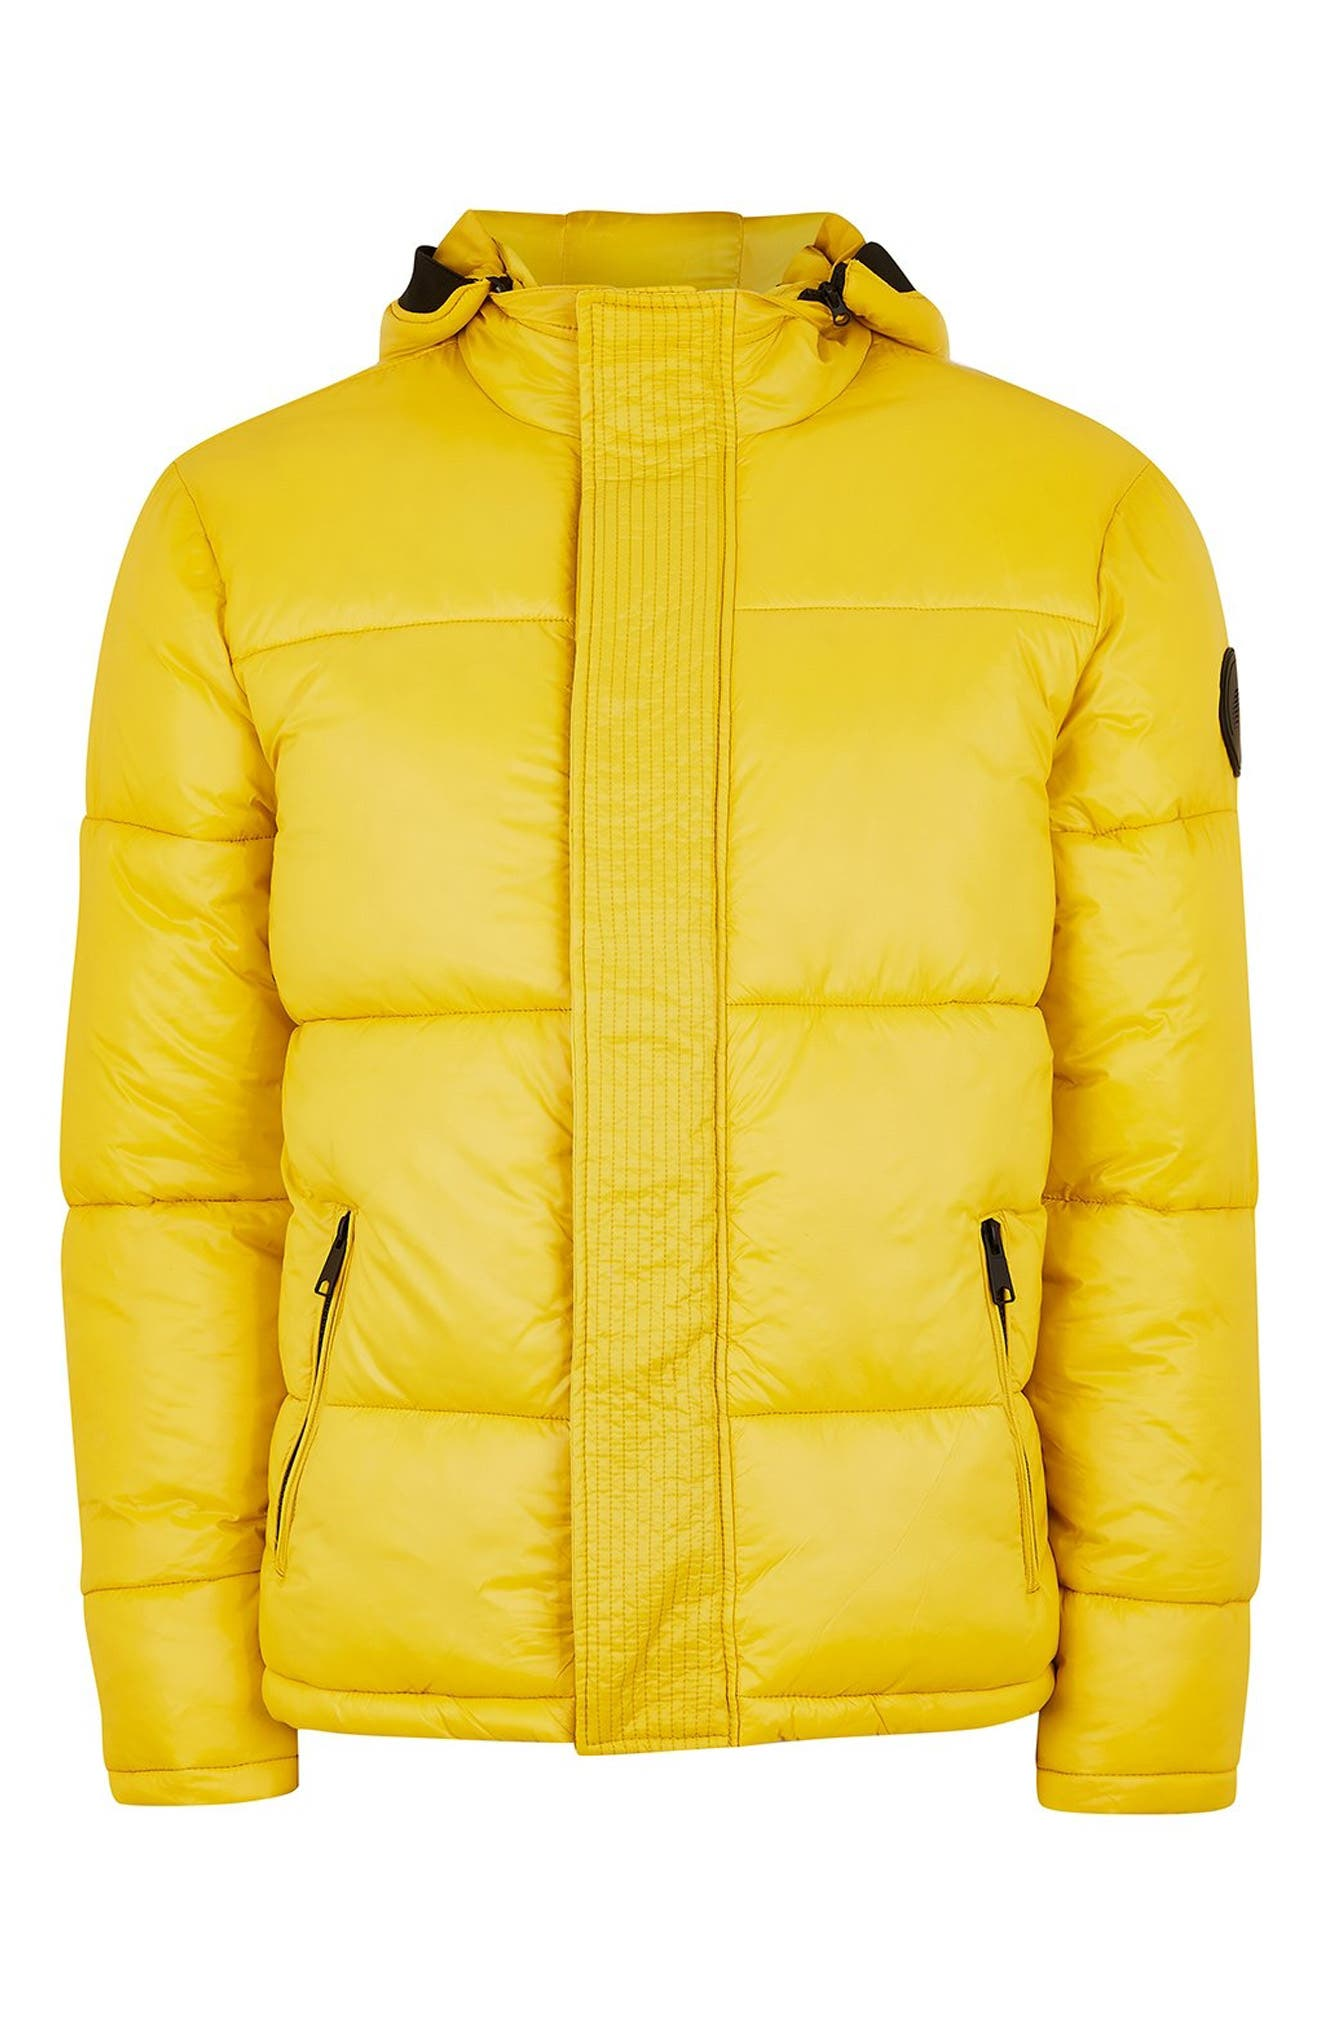 Capi Classic Fit Puffer Jacket,                             Alternate thumbnail 6, color,                             700